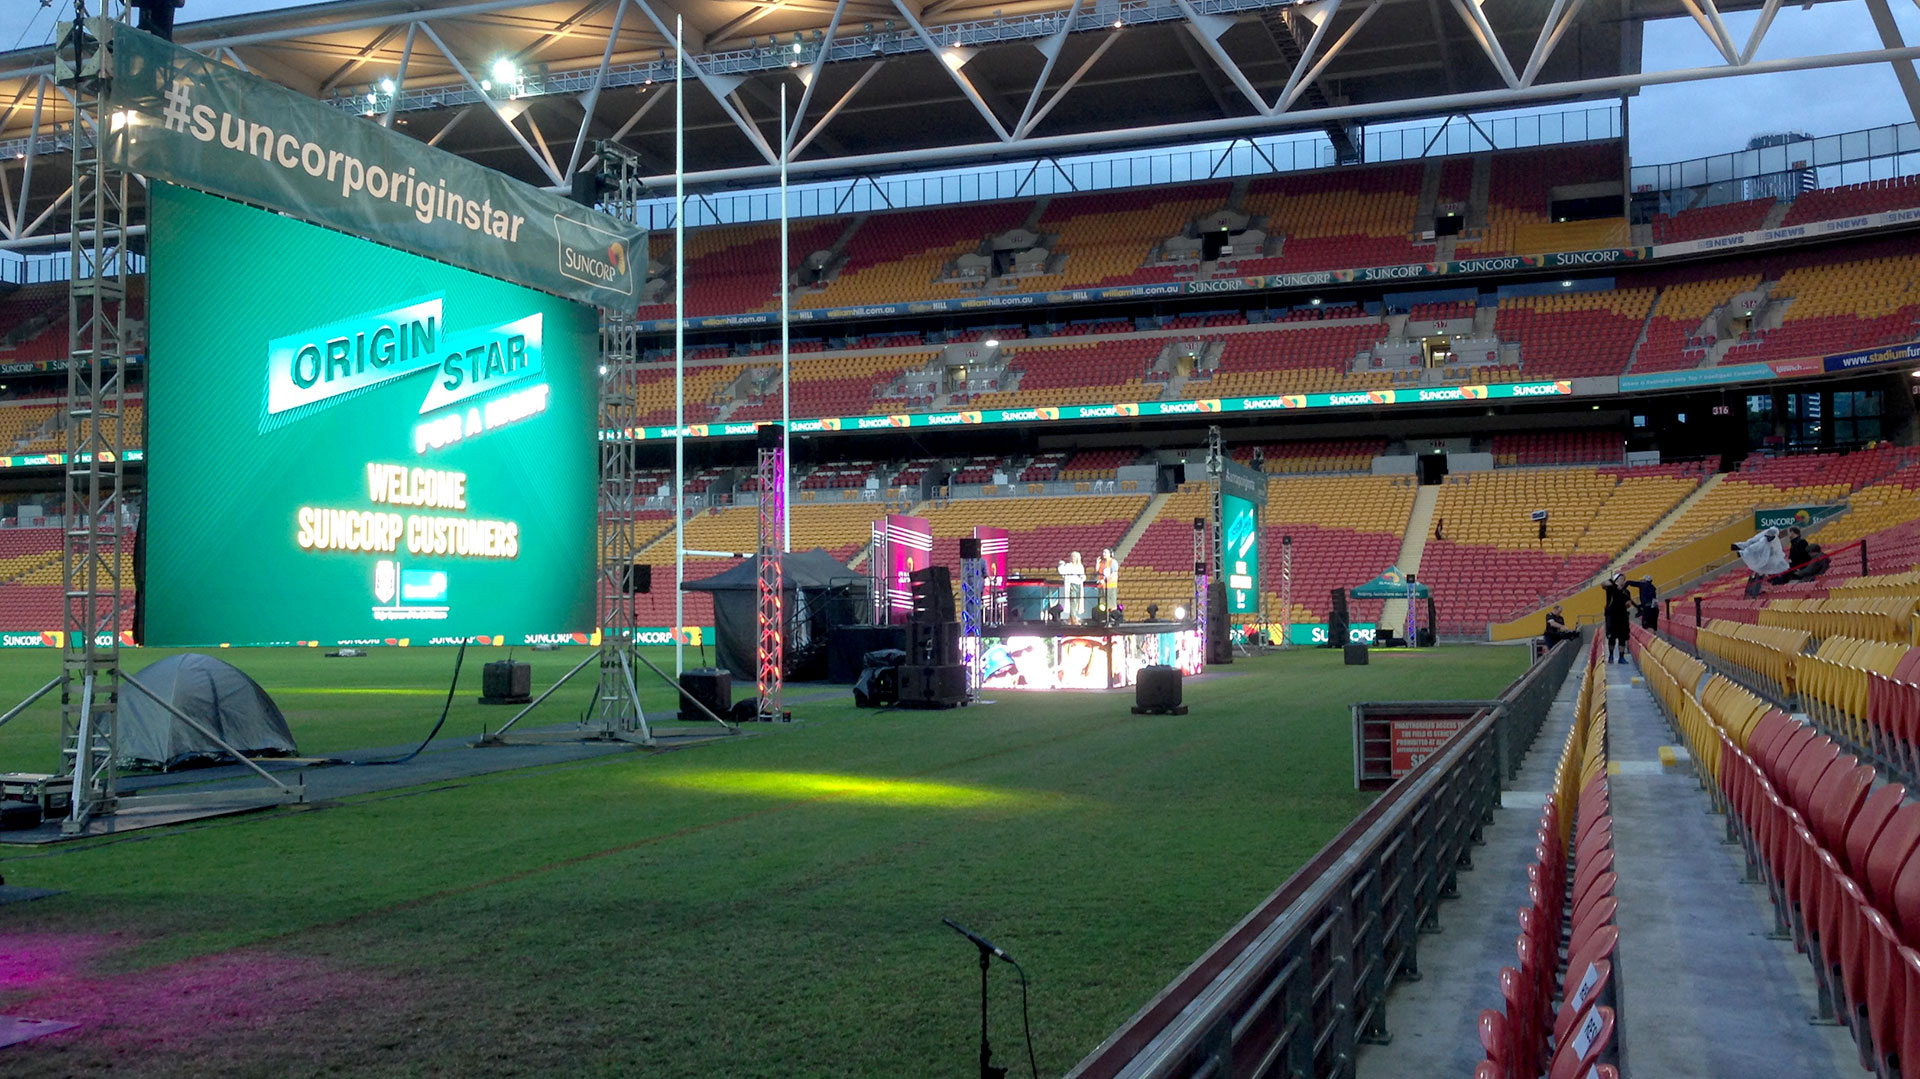 LED Screens for Suncorp Stadium Origin Stars Event